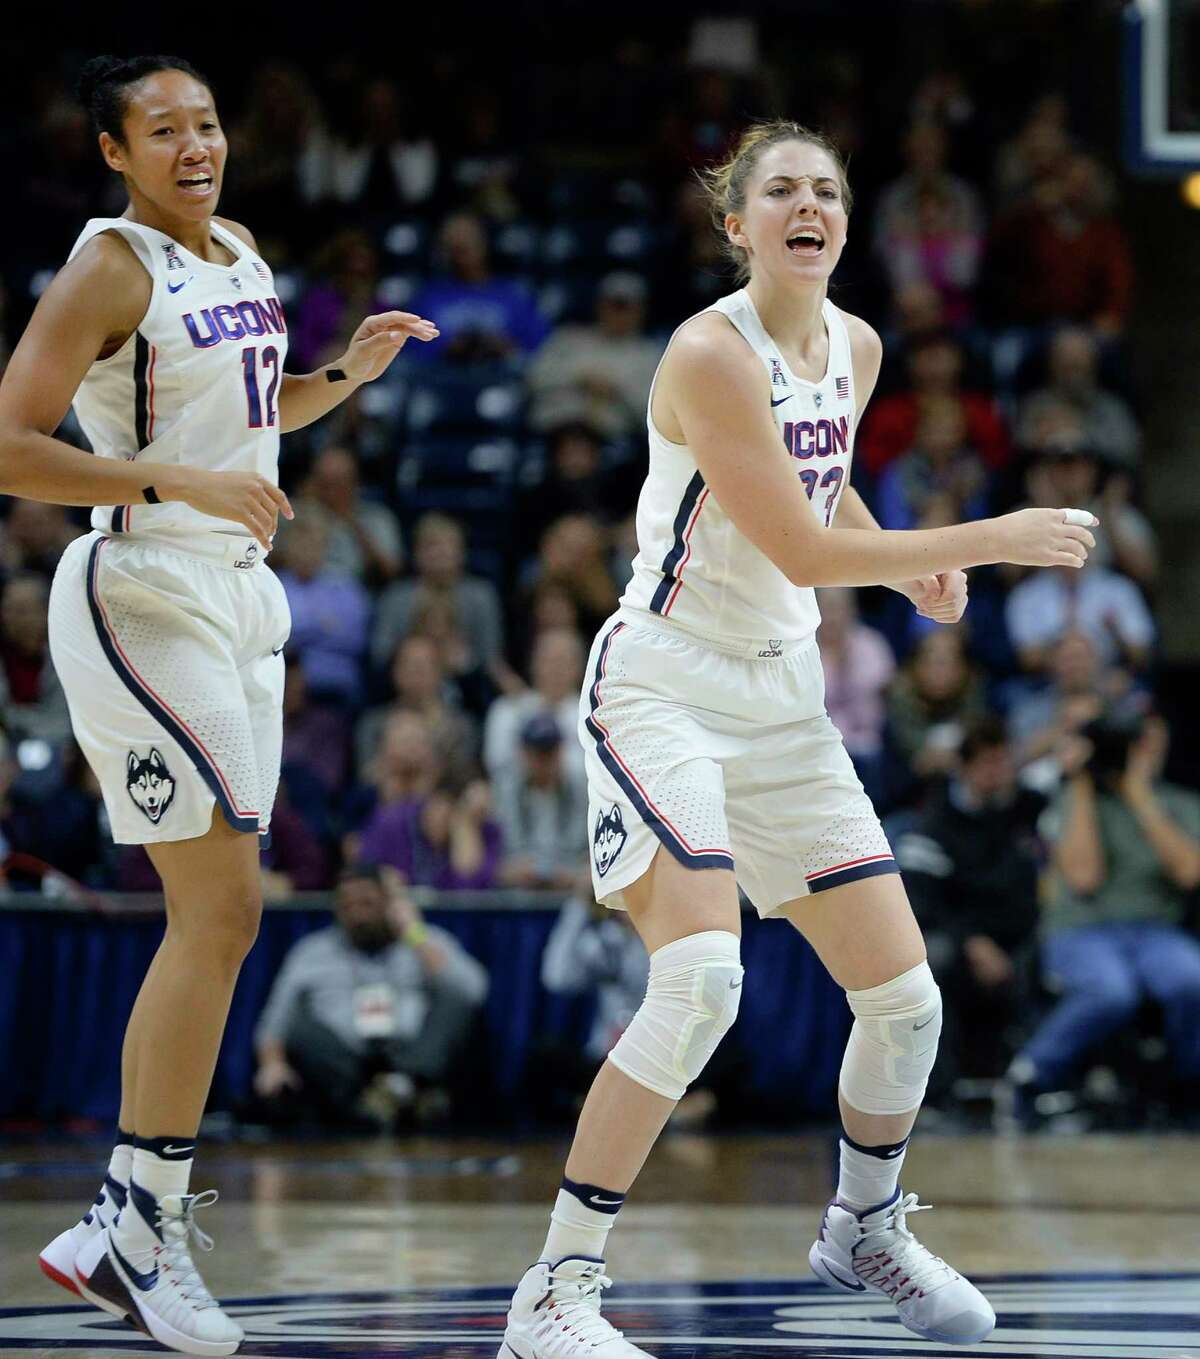 Connecticut's Saniya Chong, left, and Katie Lou Samuelson react in the first half of an NCAA college basketball game against DePaul, Thursday, Dec. 1, 2016, in Storrs, Conn.